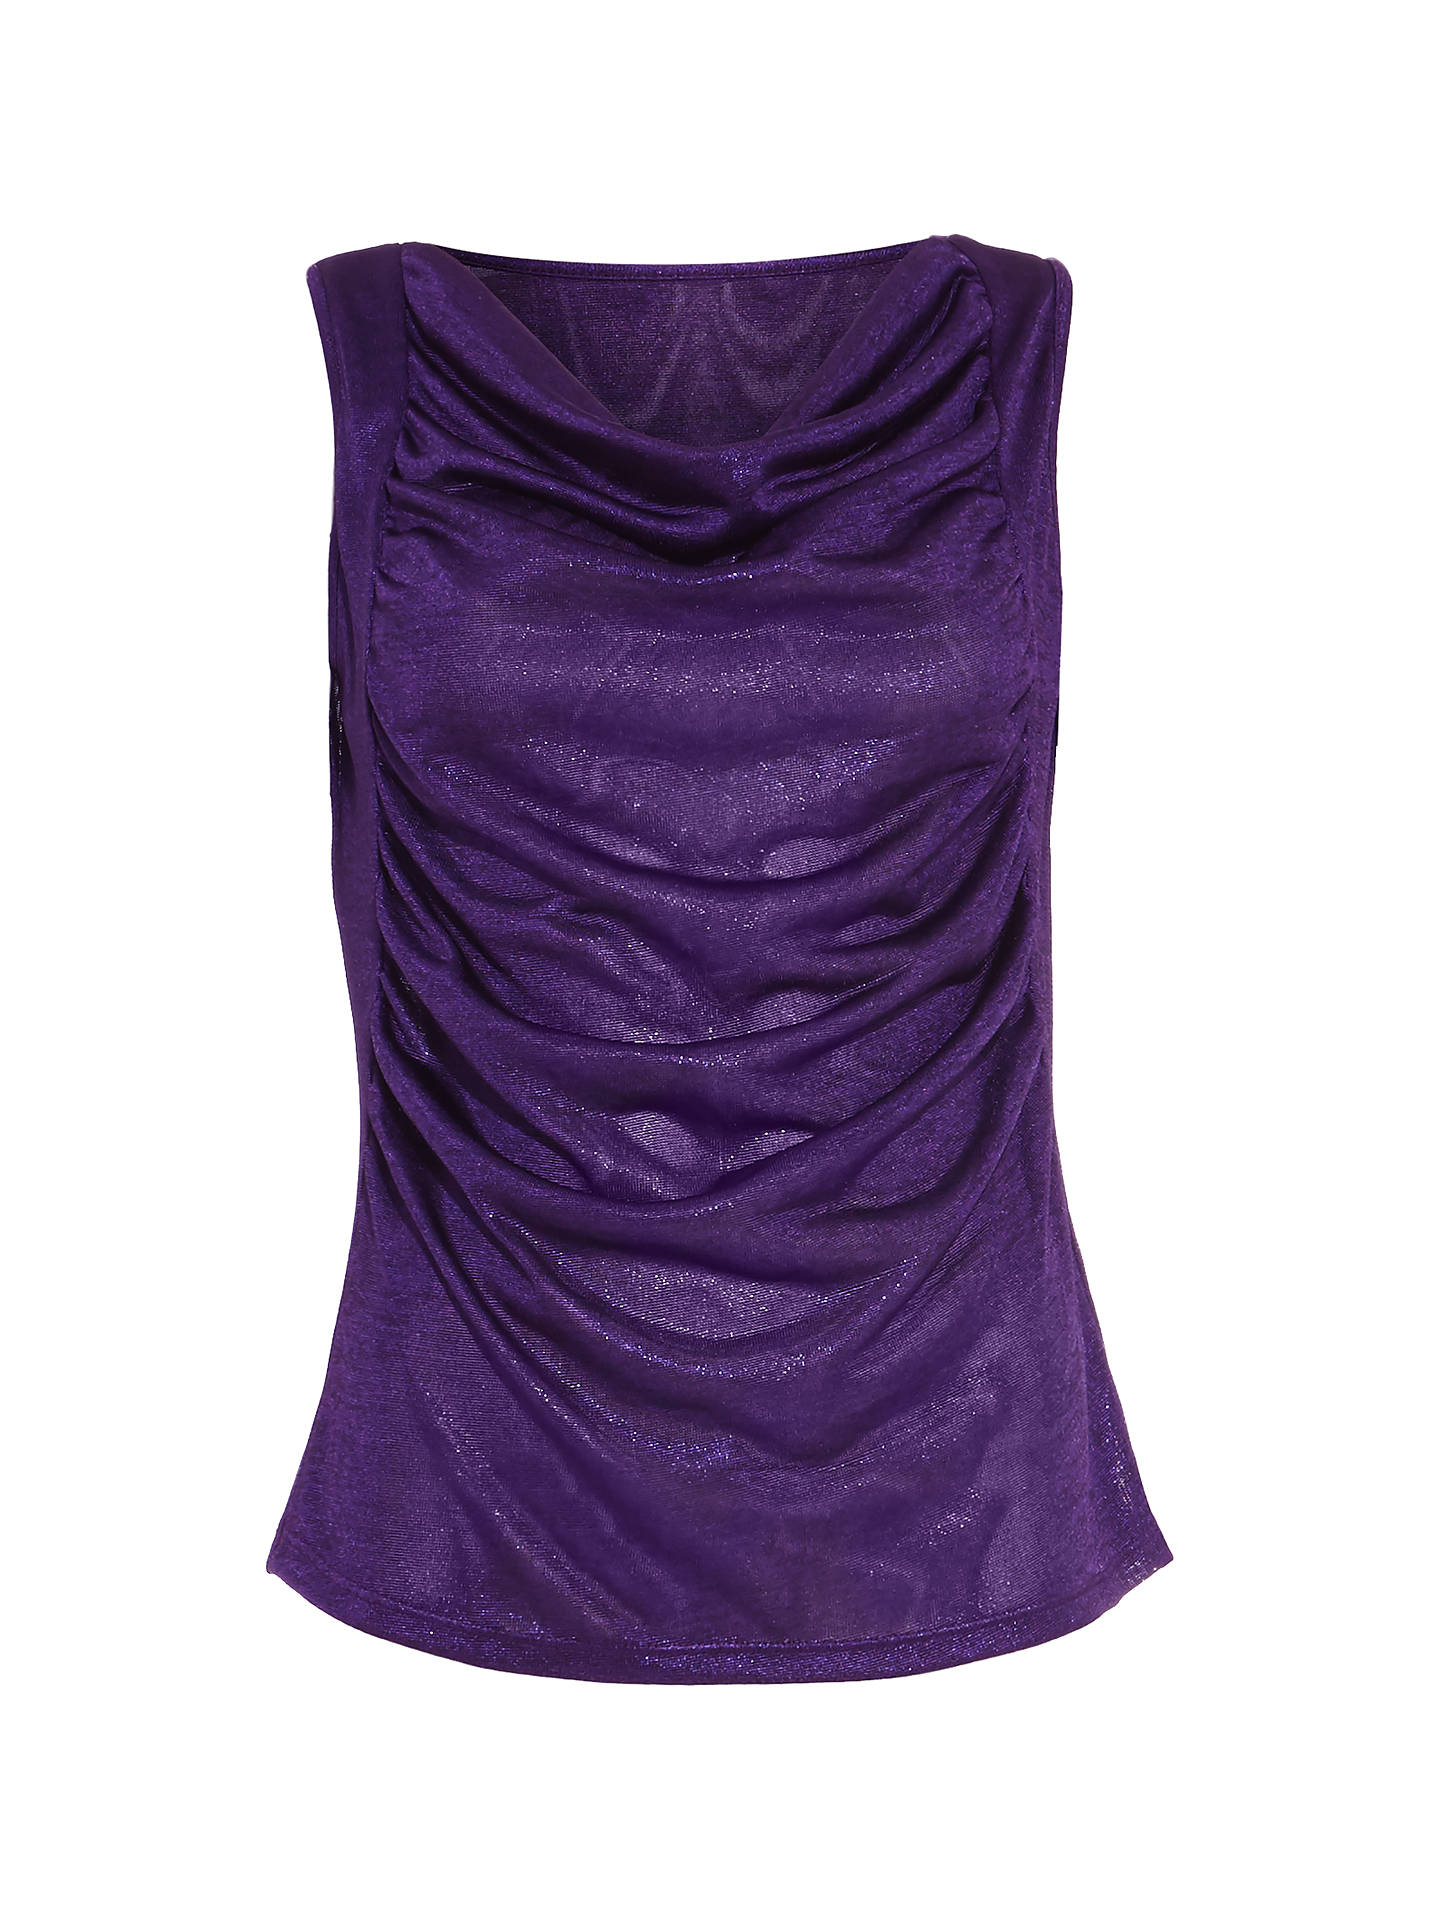 BuyDamsel in a Dress Gia Foil Jersey Top, Purple, 16 Online at johnlewis.com